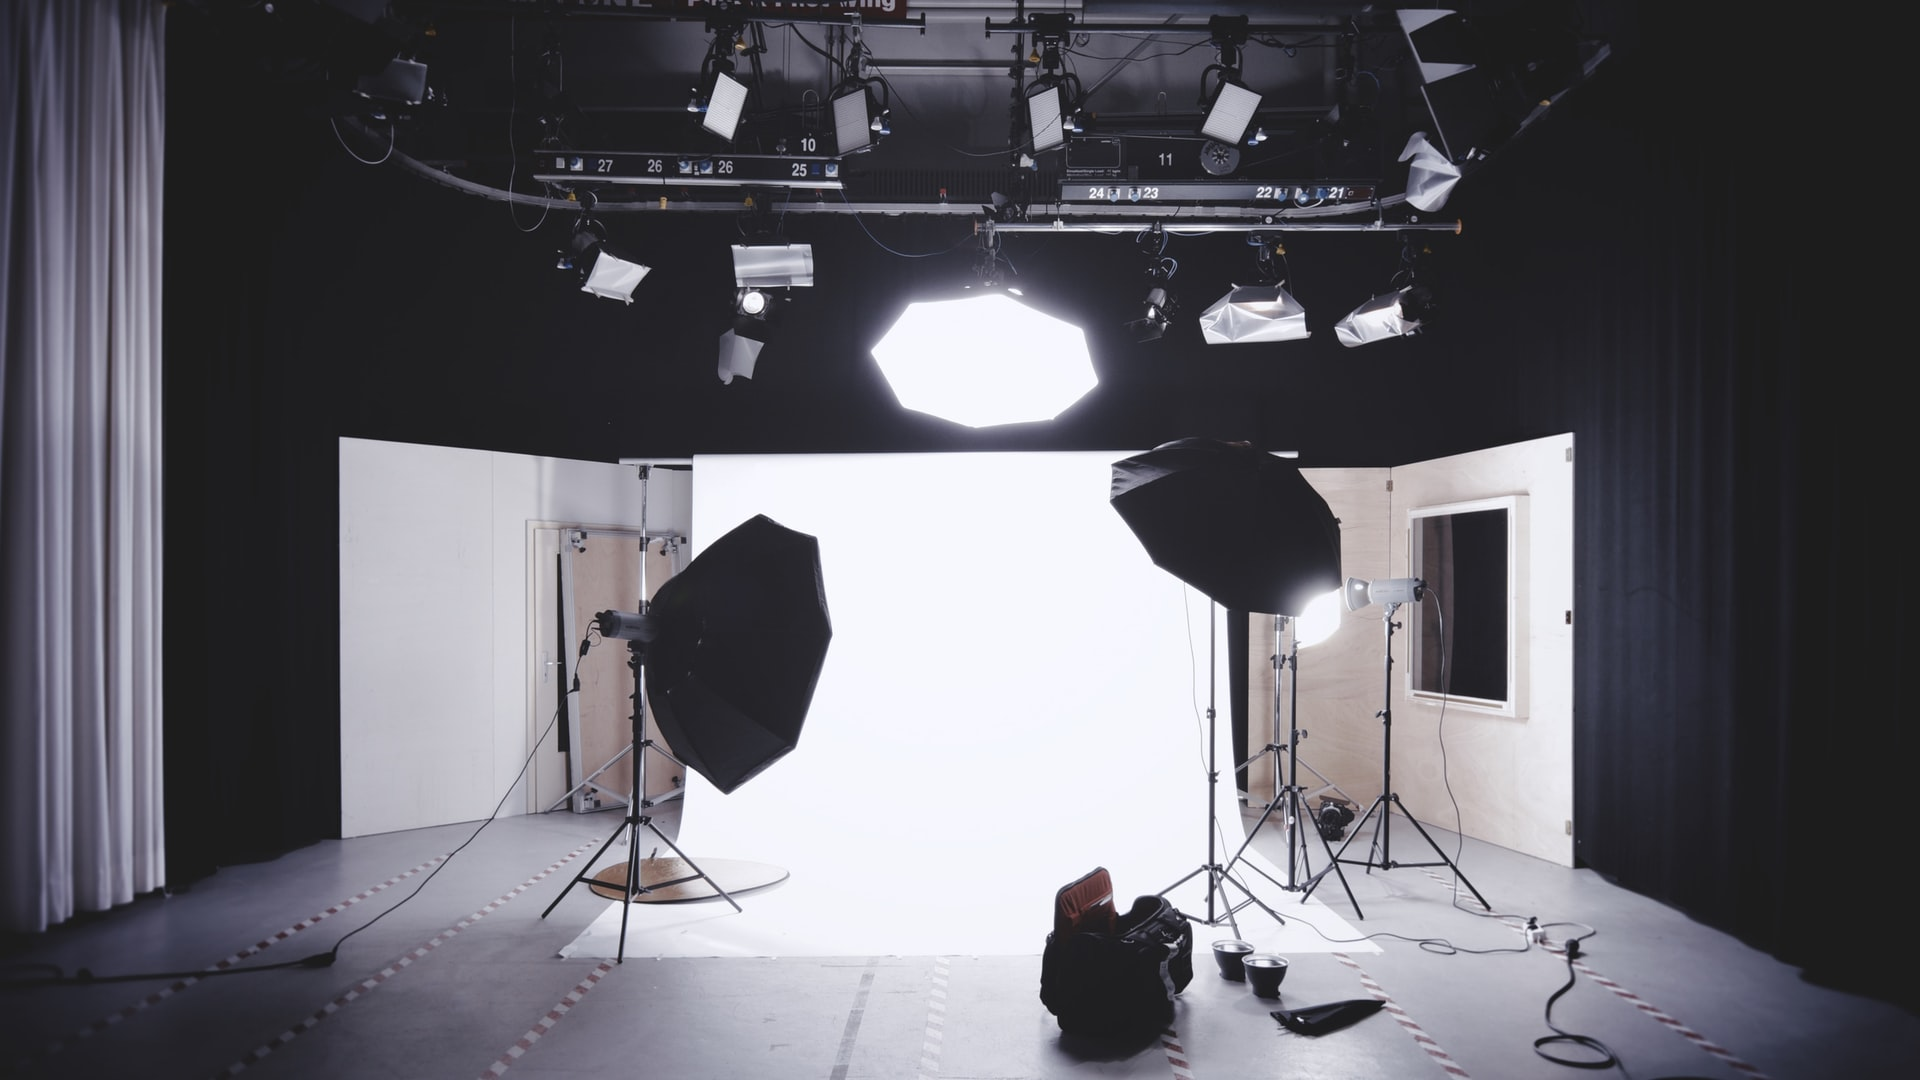 The Top 10 Business Coaches and Mastermind Groups to Help You Grow Your Photography Business